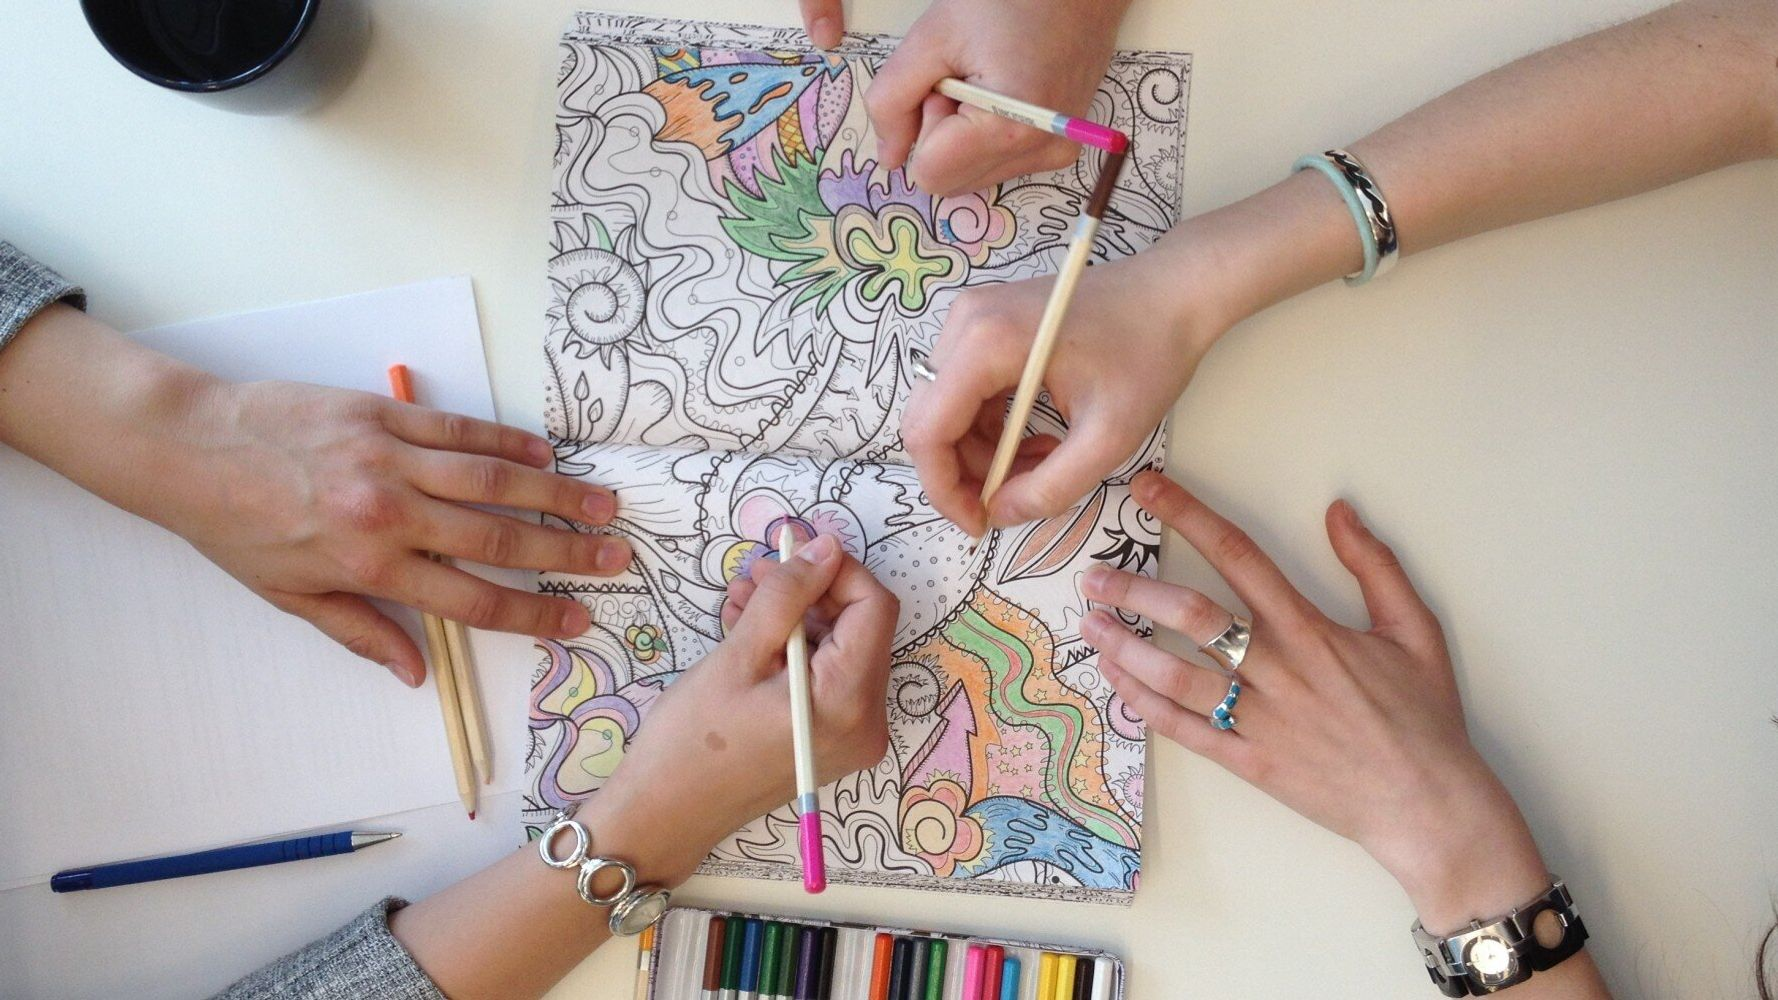 Colour Me Mindful: The Benefits of Colouring Books as a Calming Tool